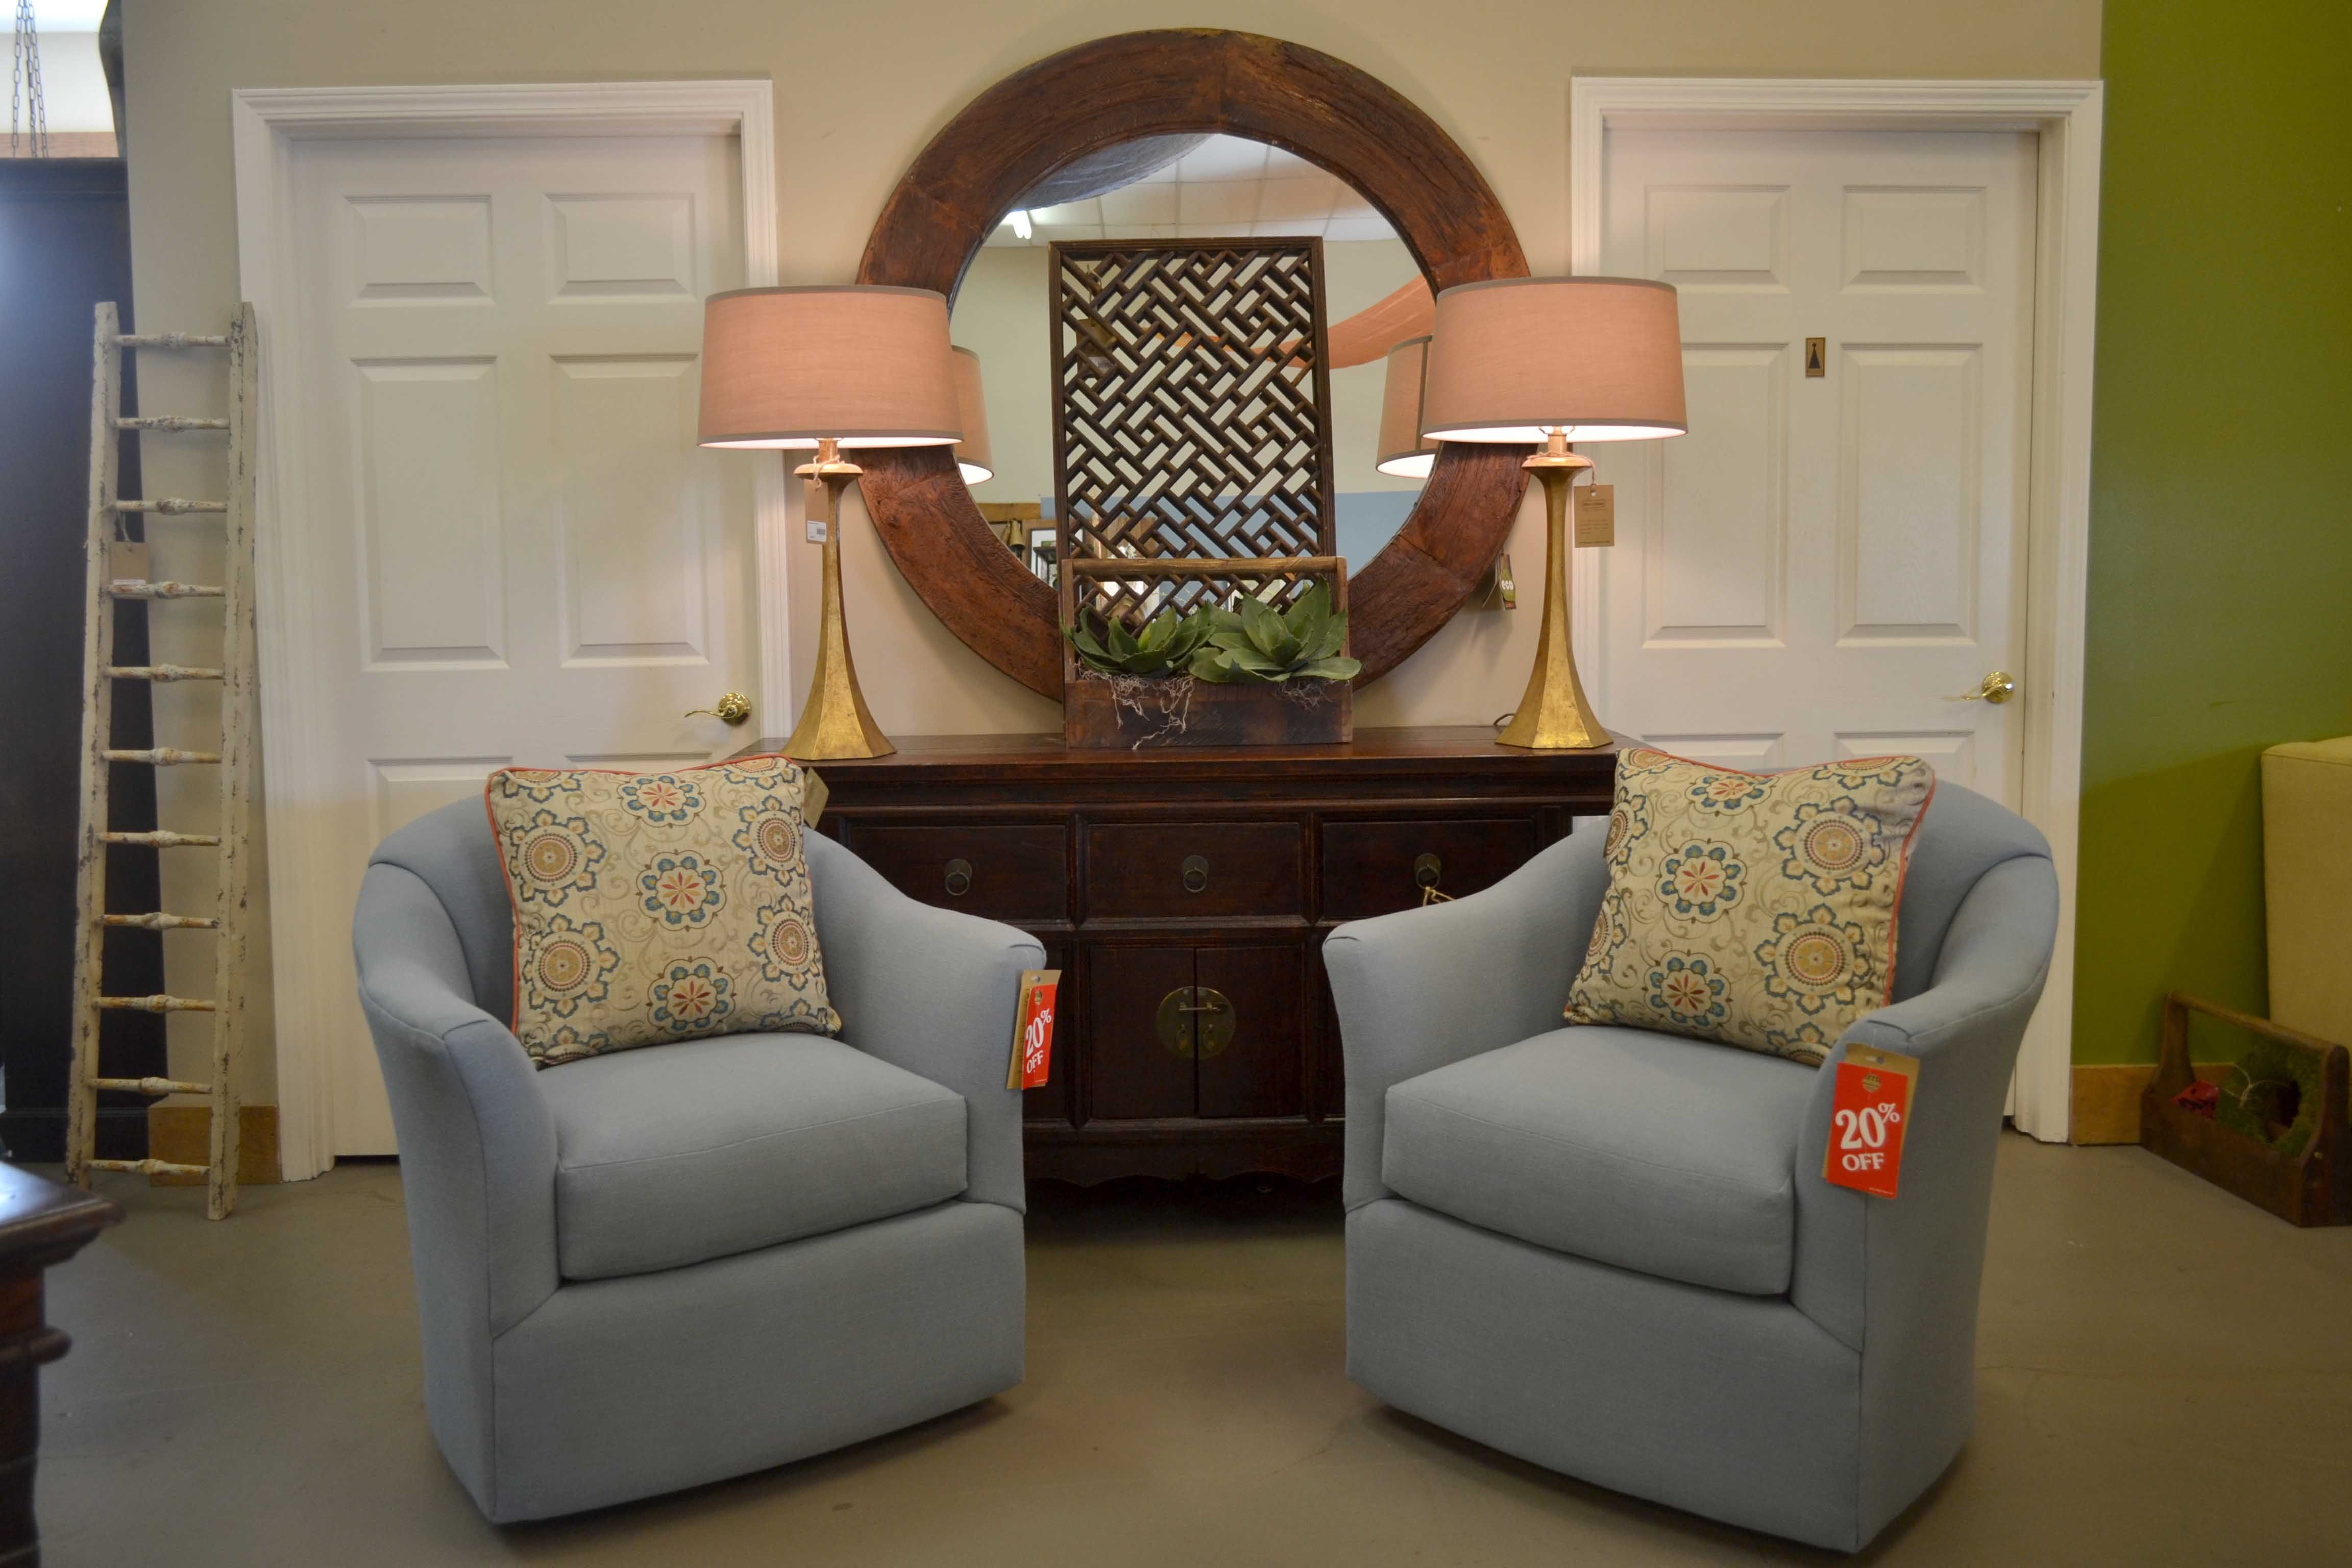 Swivel Chairs Are Back Swivel Chair Master Bedroom Swivel